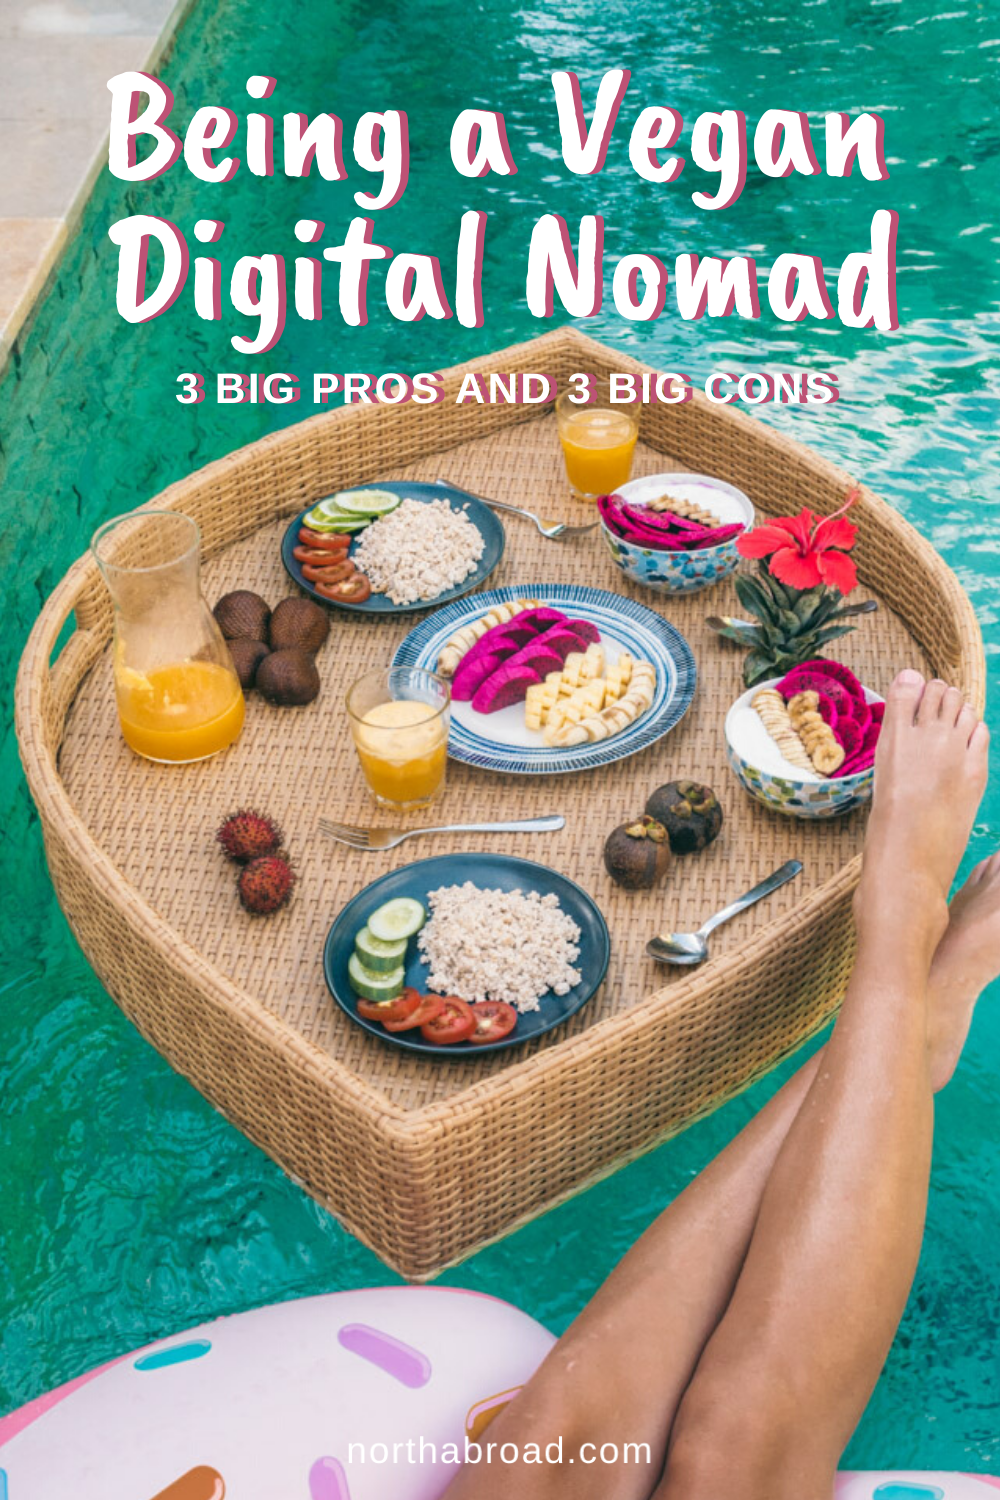 3 Big Pros (and 3 Big Cons) of Being a Vegan Digital Nomad